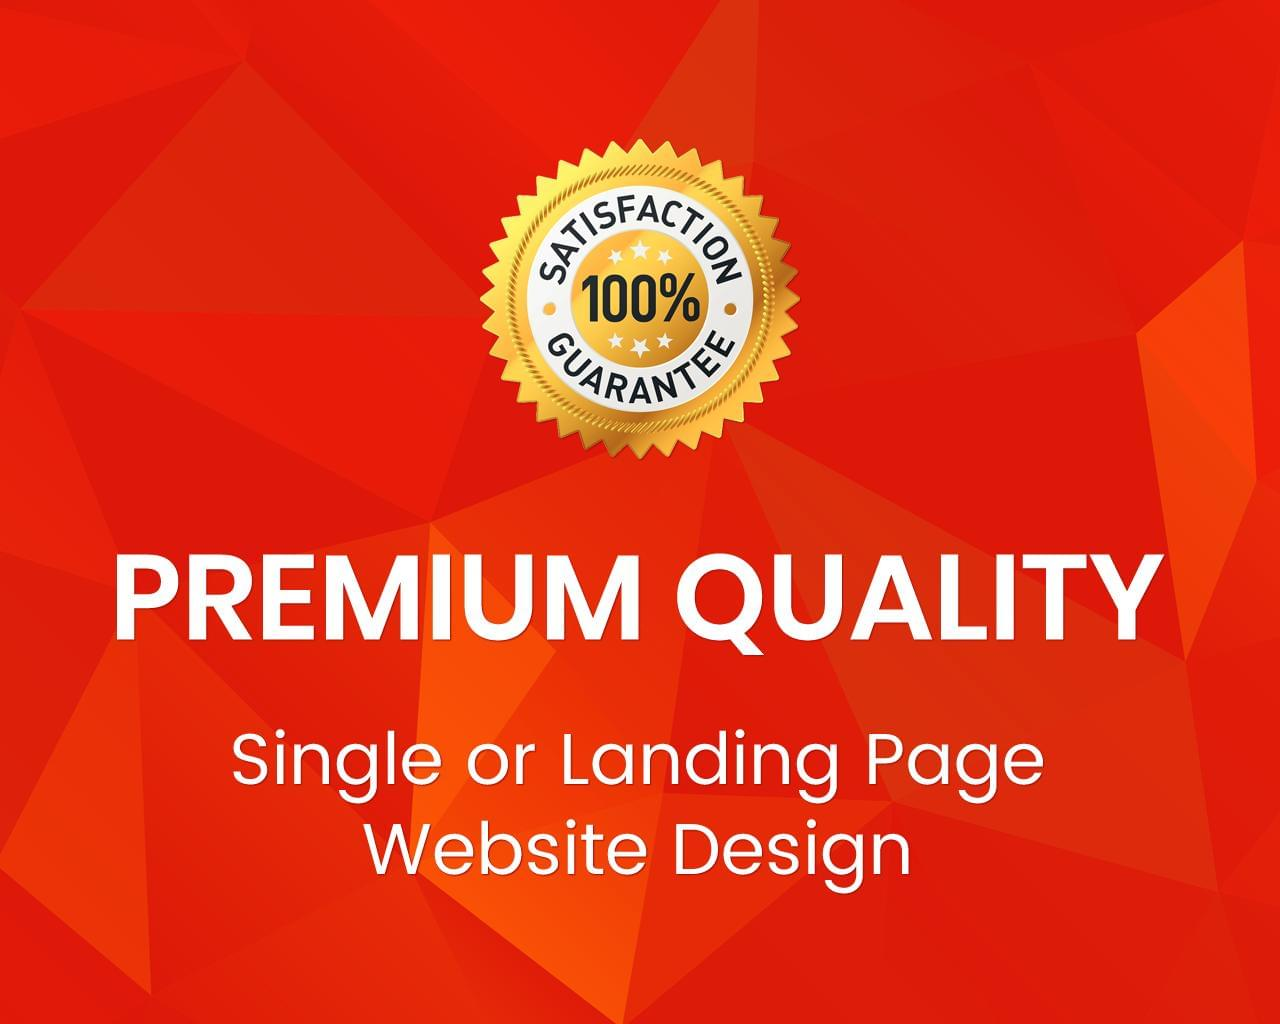 Premium Quality Single/Landing Page Website Design by uipro - 113373